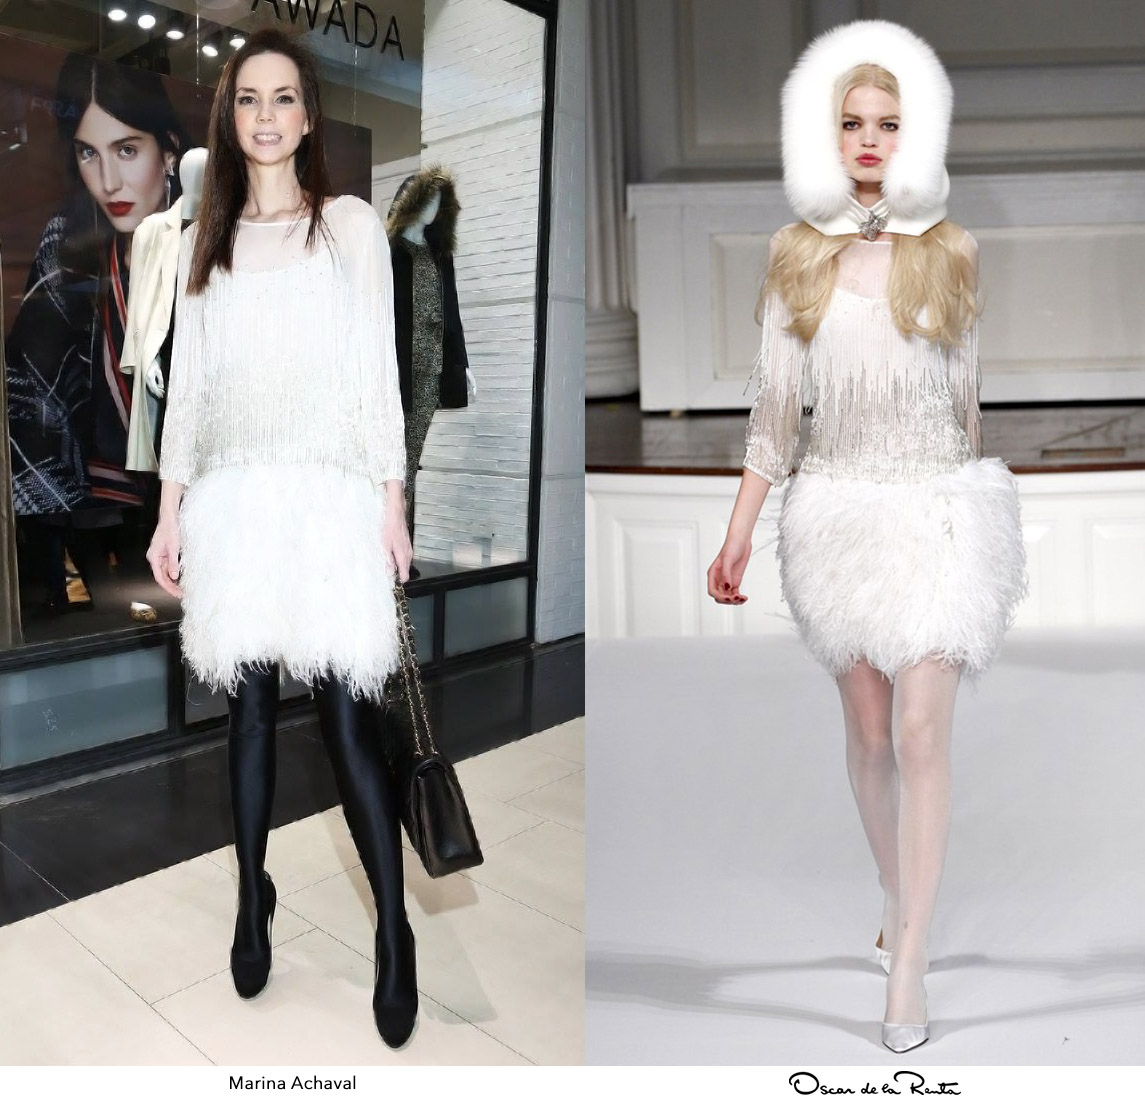 Marina-Achaval-Awada-Alto-Palermo-Oscar-de-la-Renta-Fall-2011-Feather-Skirt-Jimmy-Choo-Cosmic.jpg